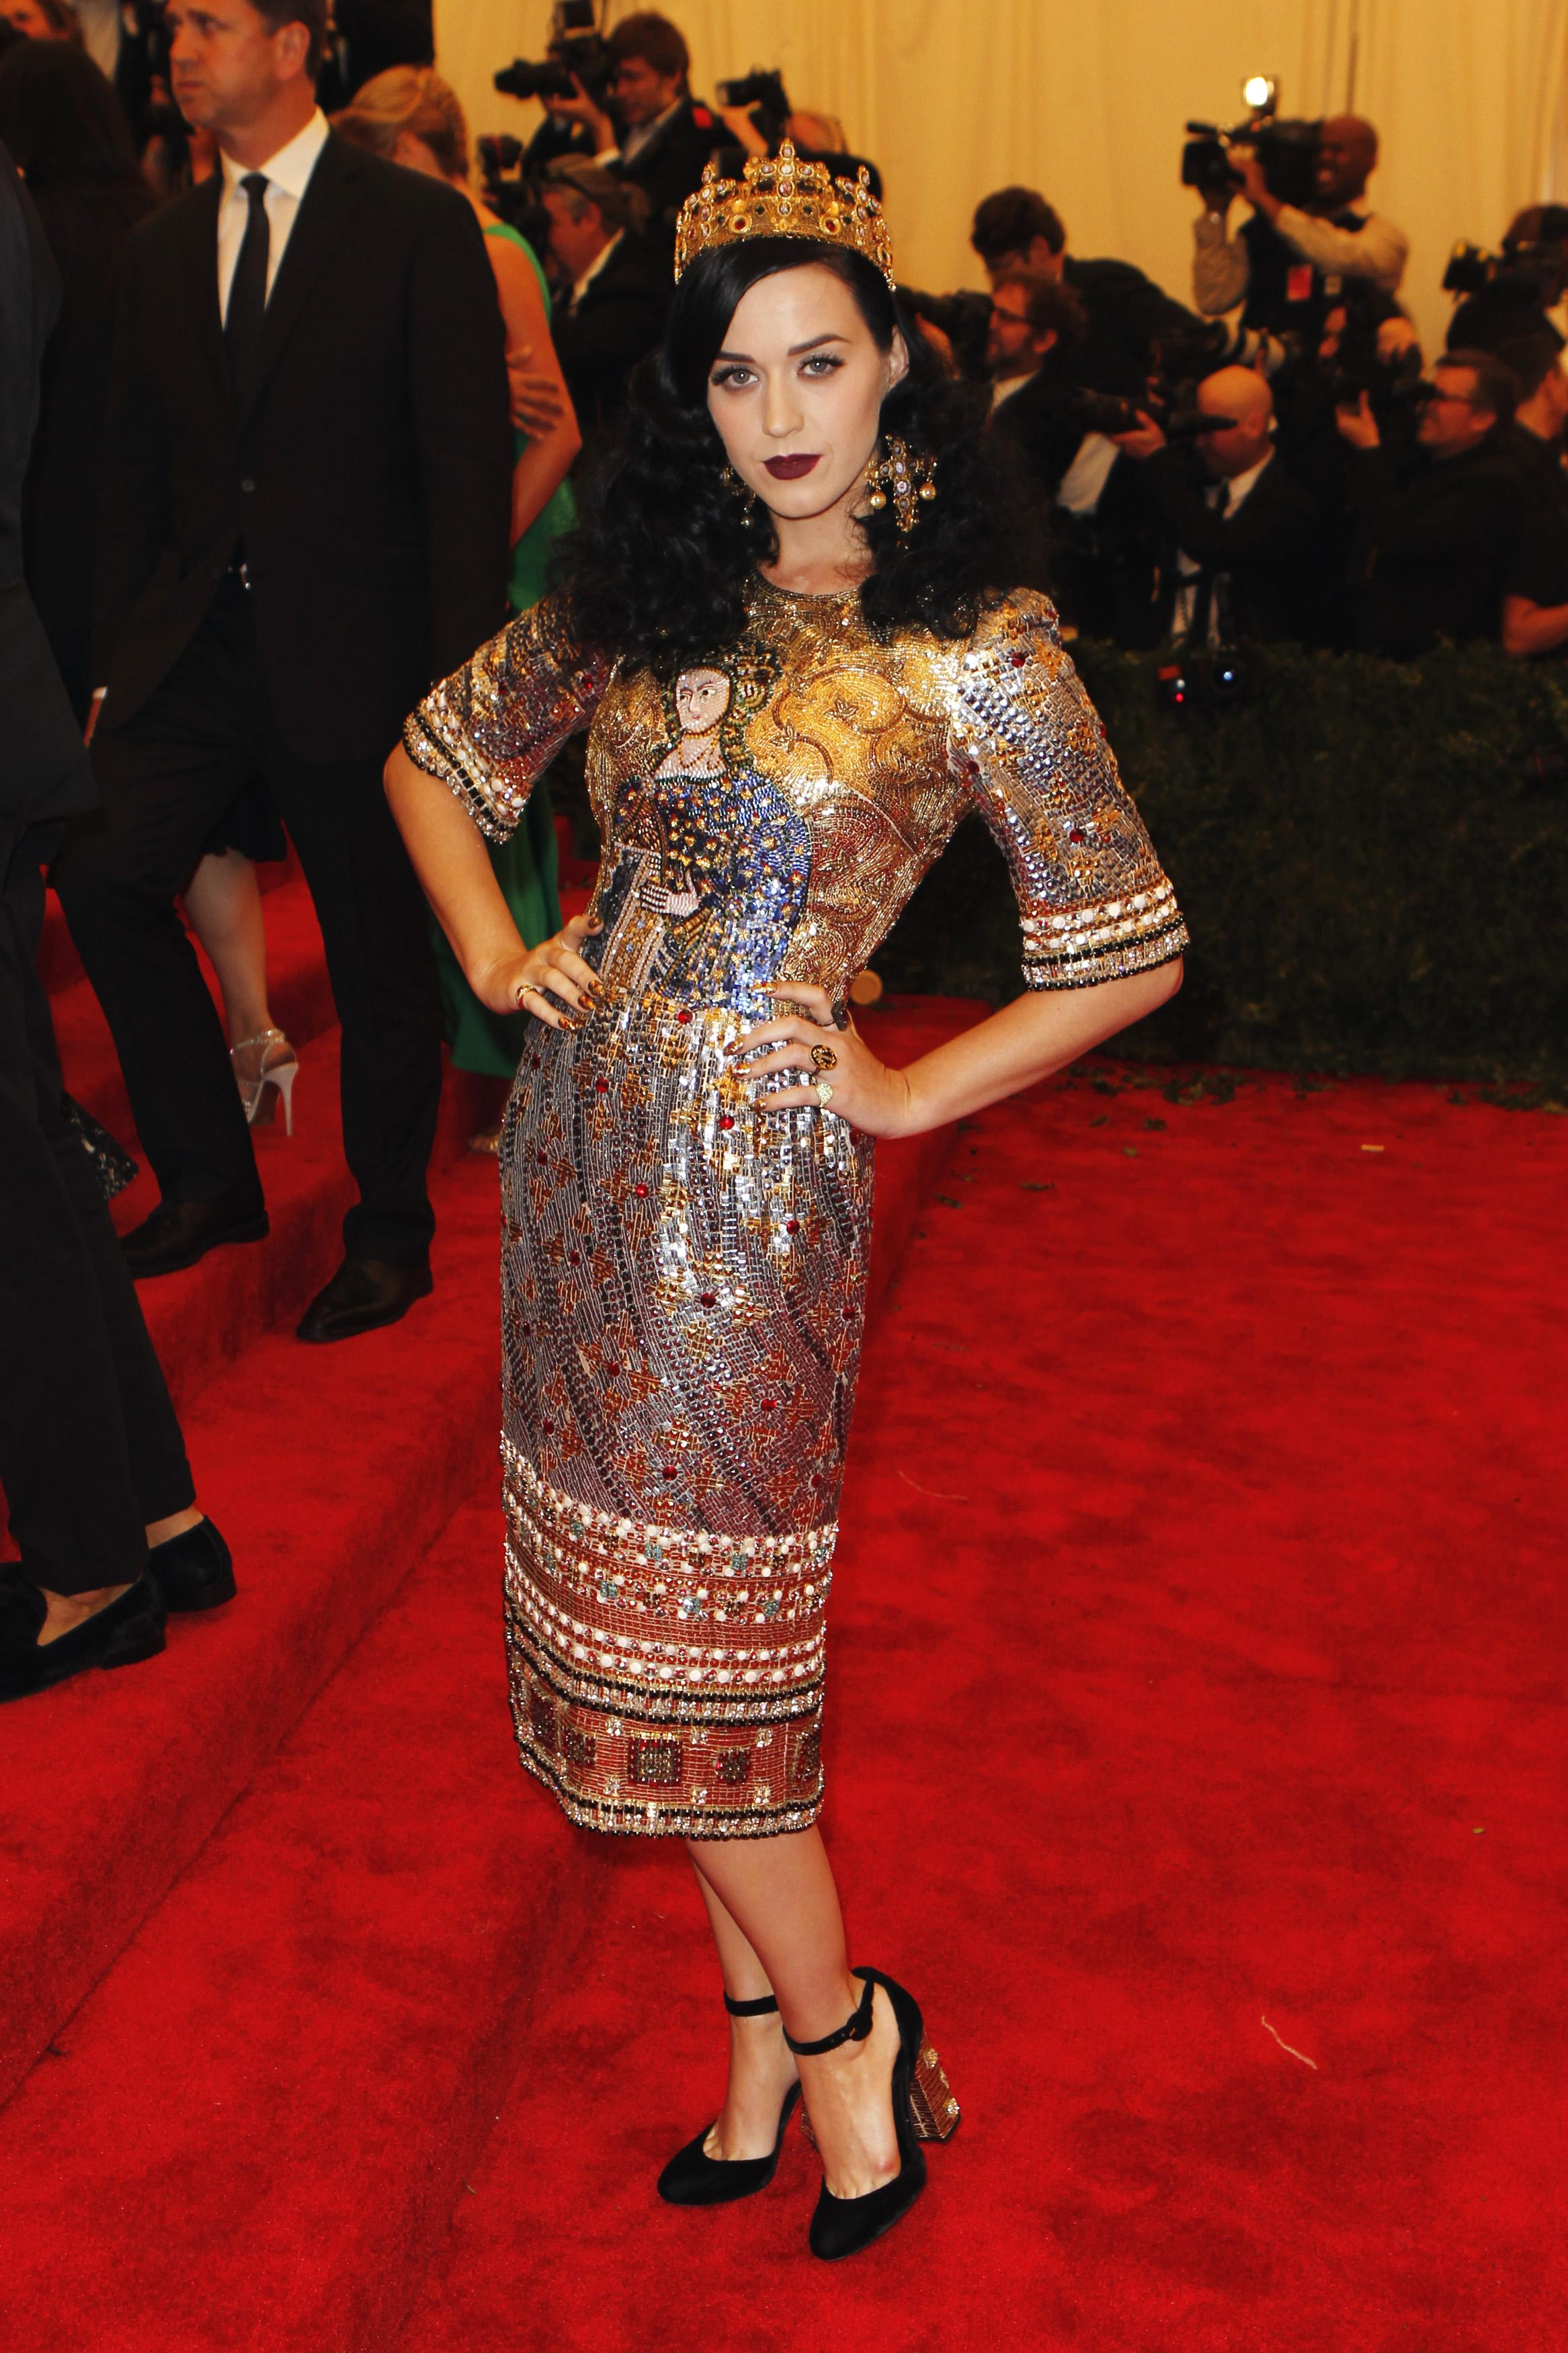 Katy Perry at the 2013 Met Gala